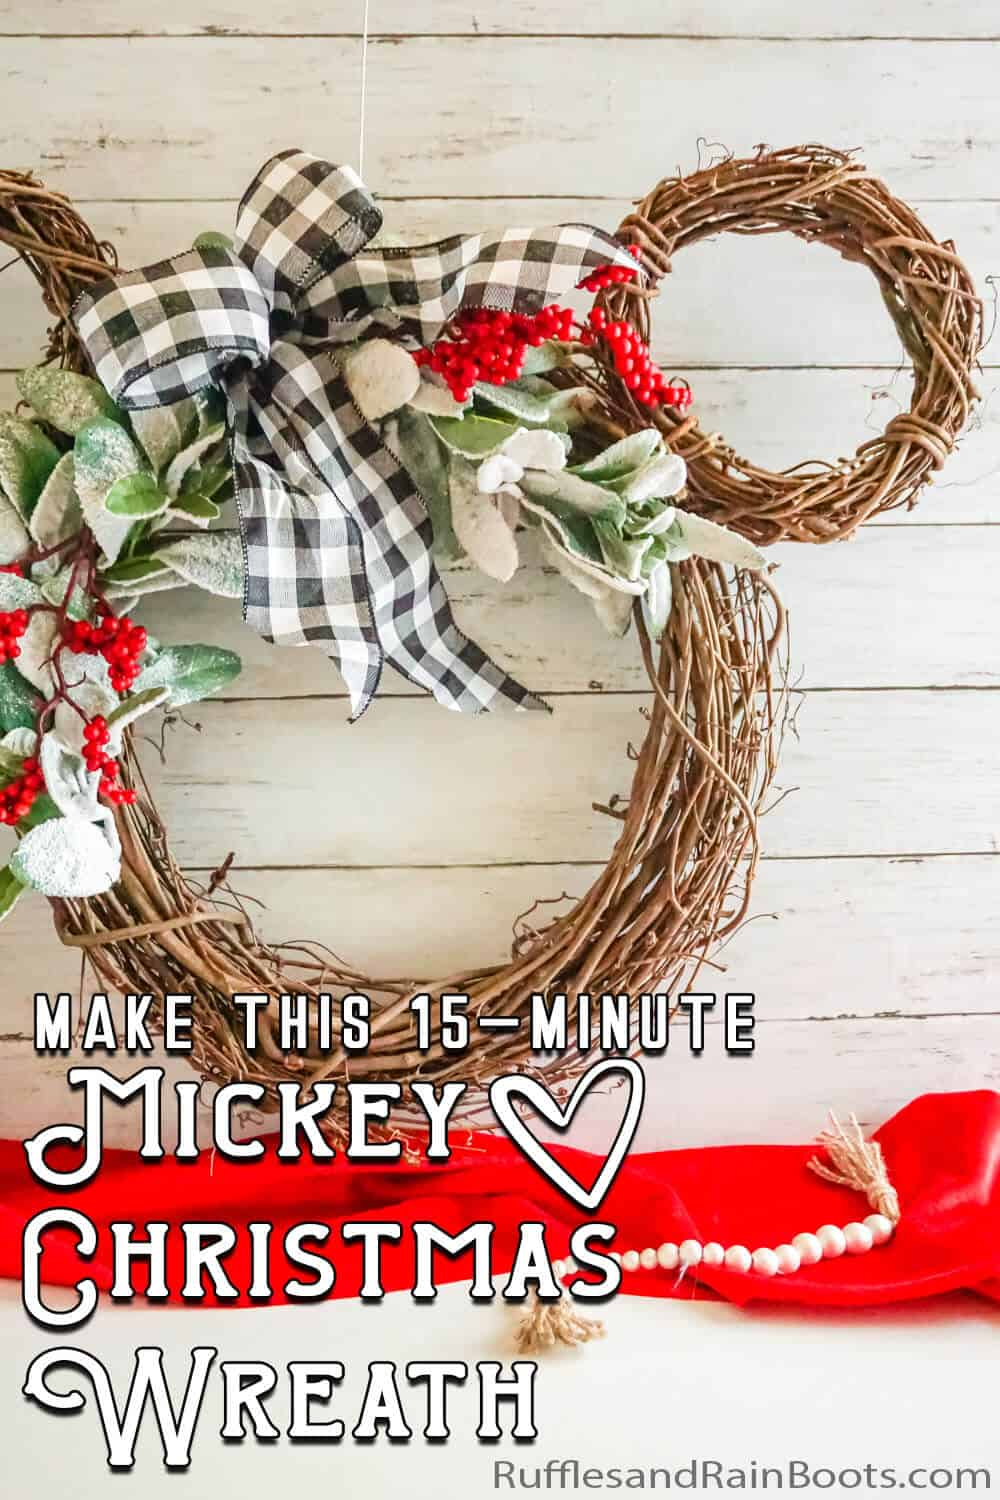 holiday mickey wreath with text which reads make this 15-minute mickey christmas wreath